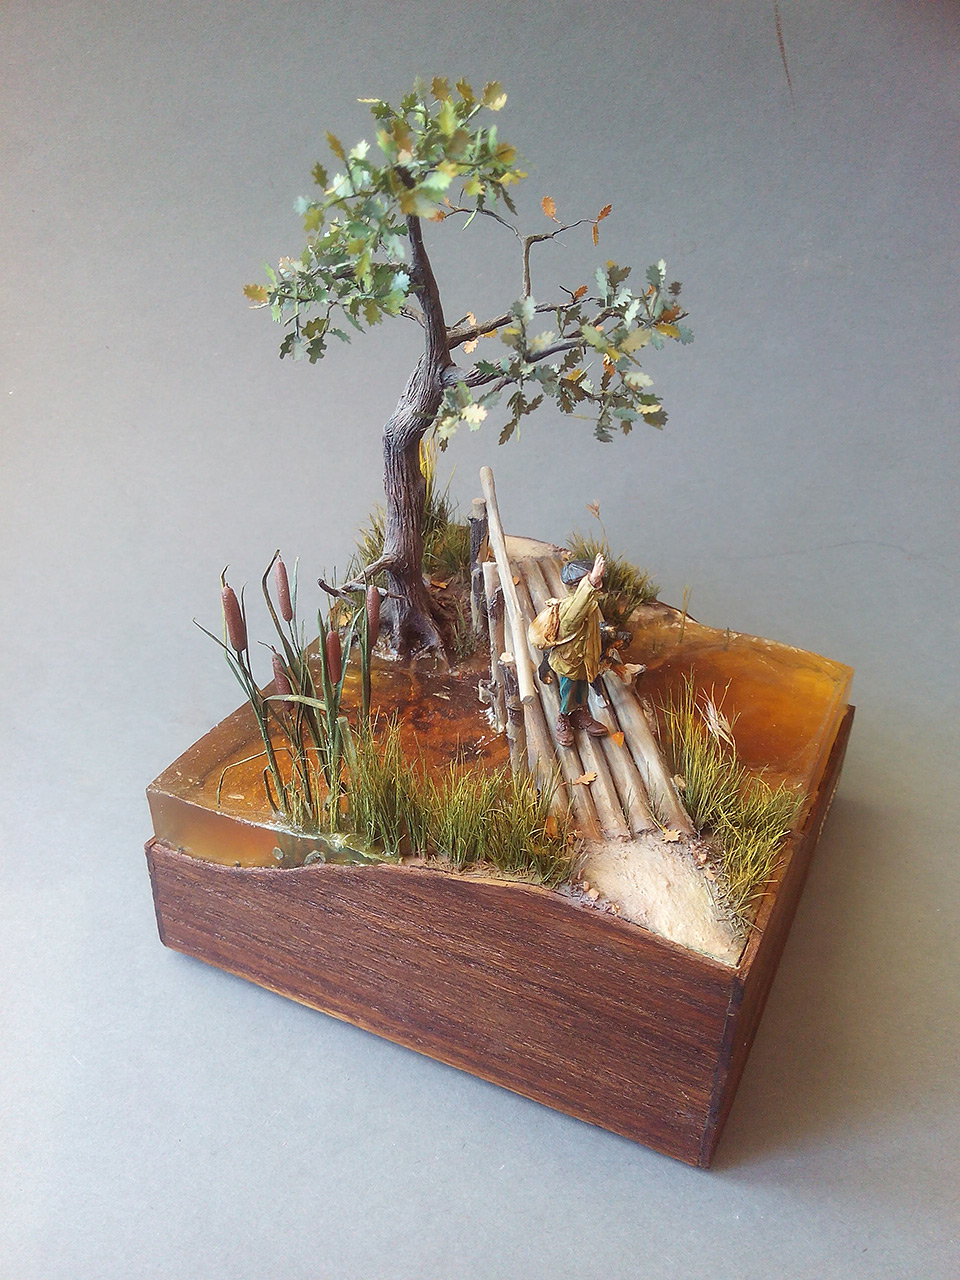 Dioramas and Vignettes: The Friends, photo #4